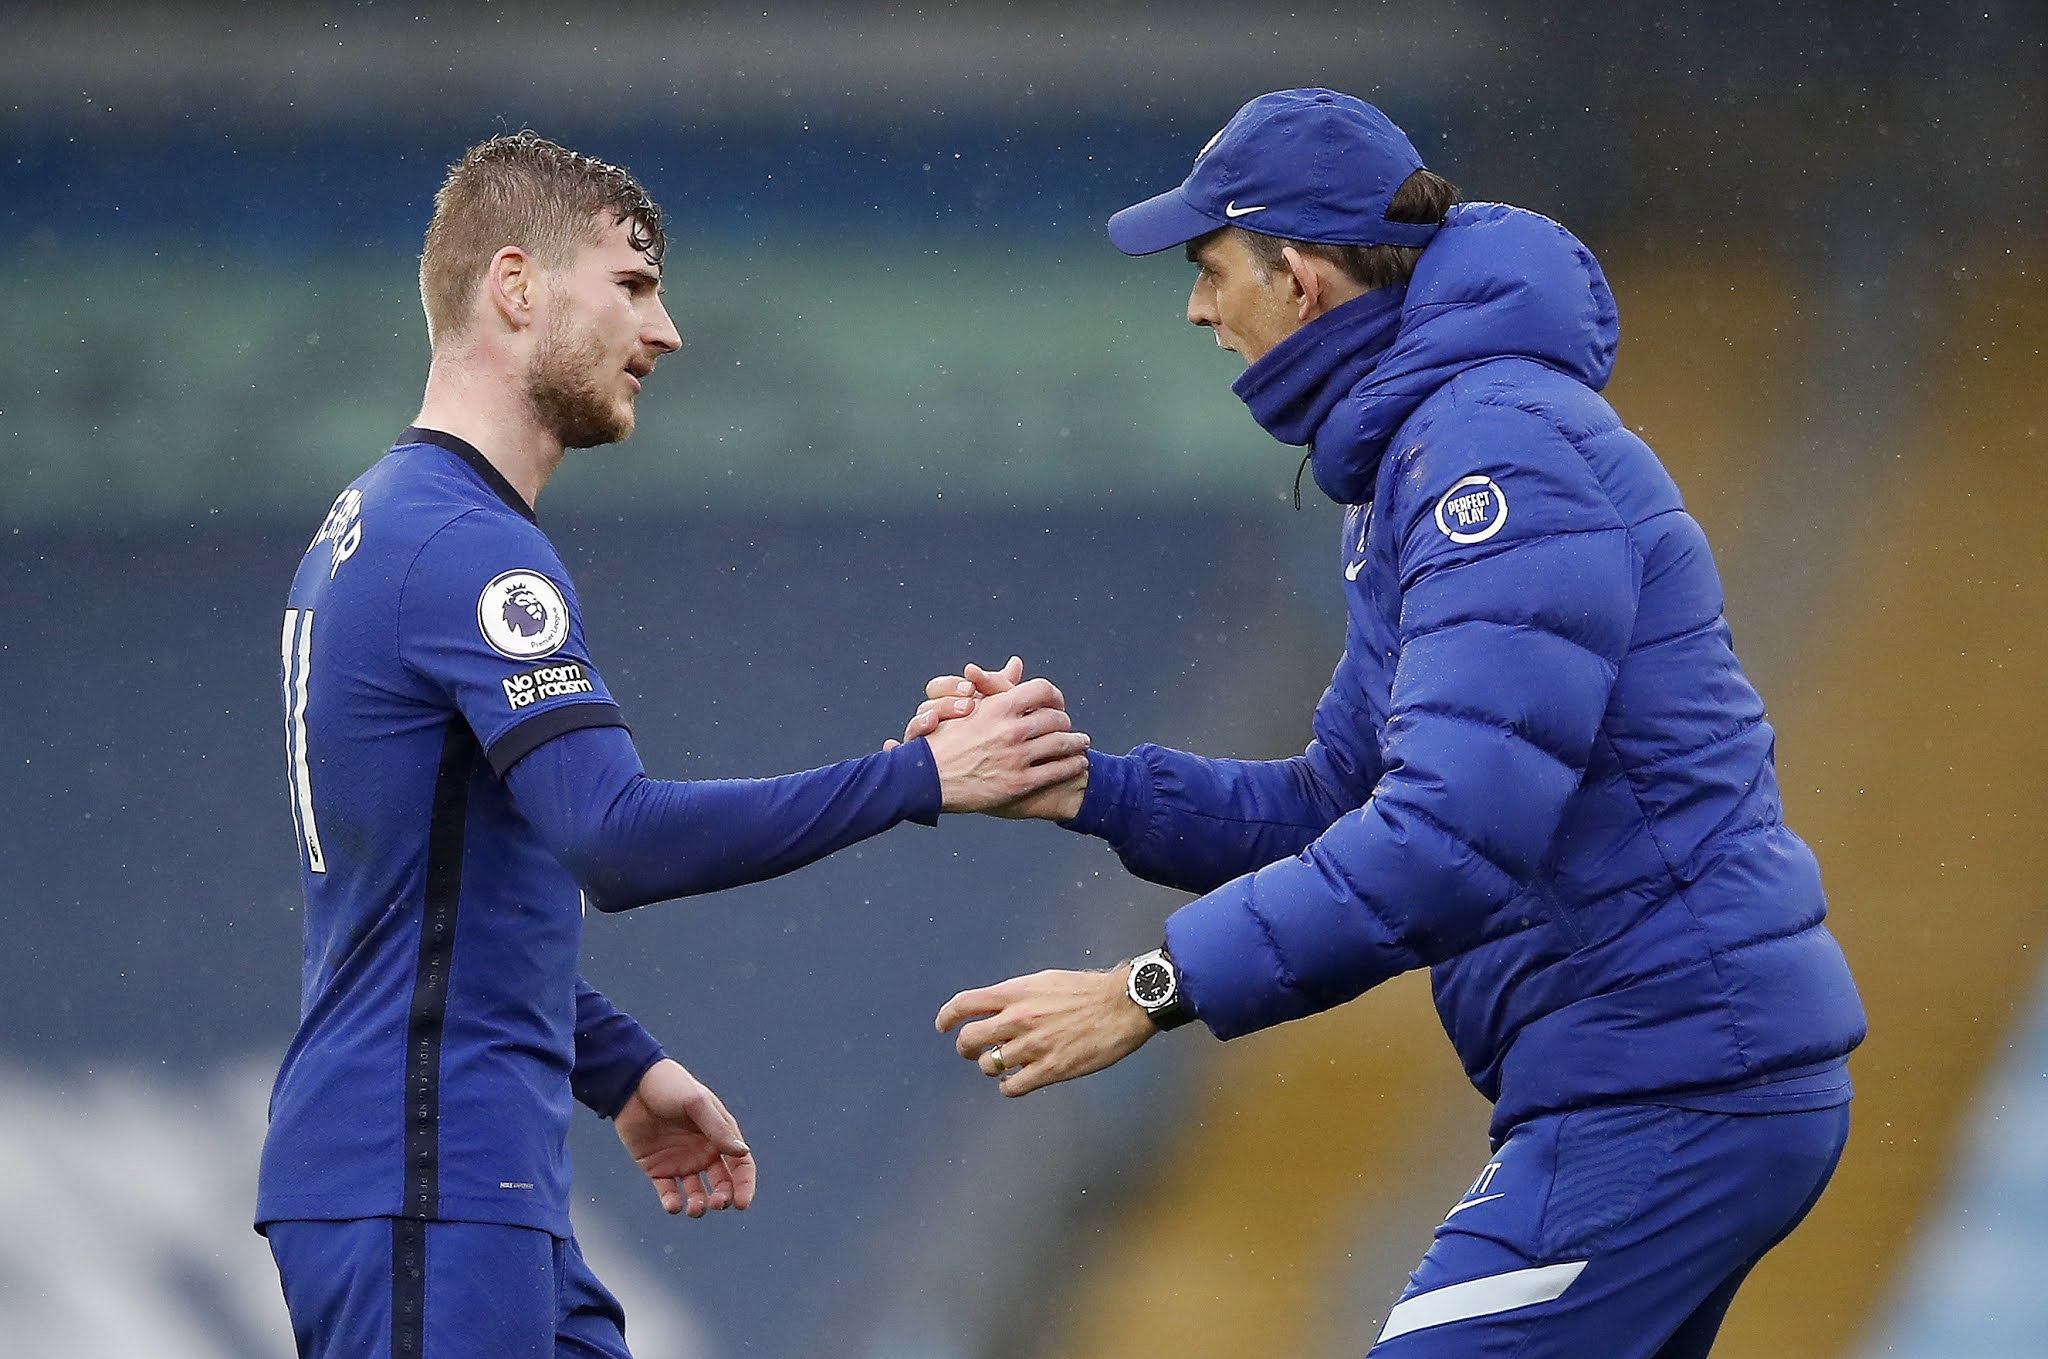 Chelsea will look to cement their top-four position against Leicester City